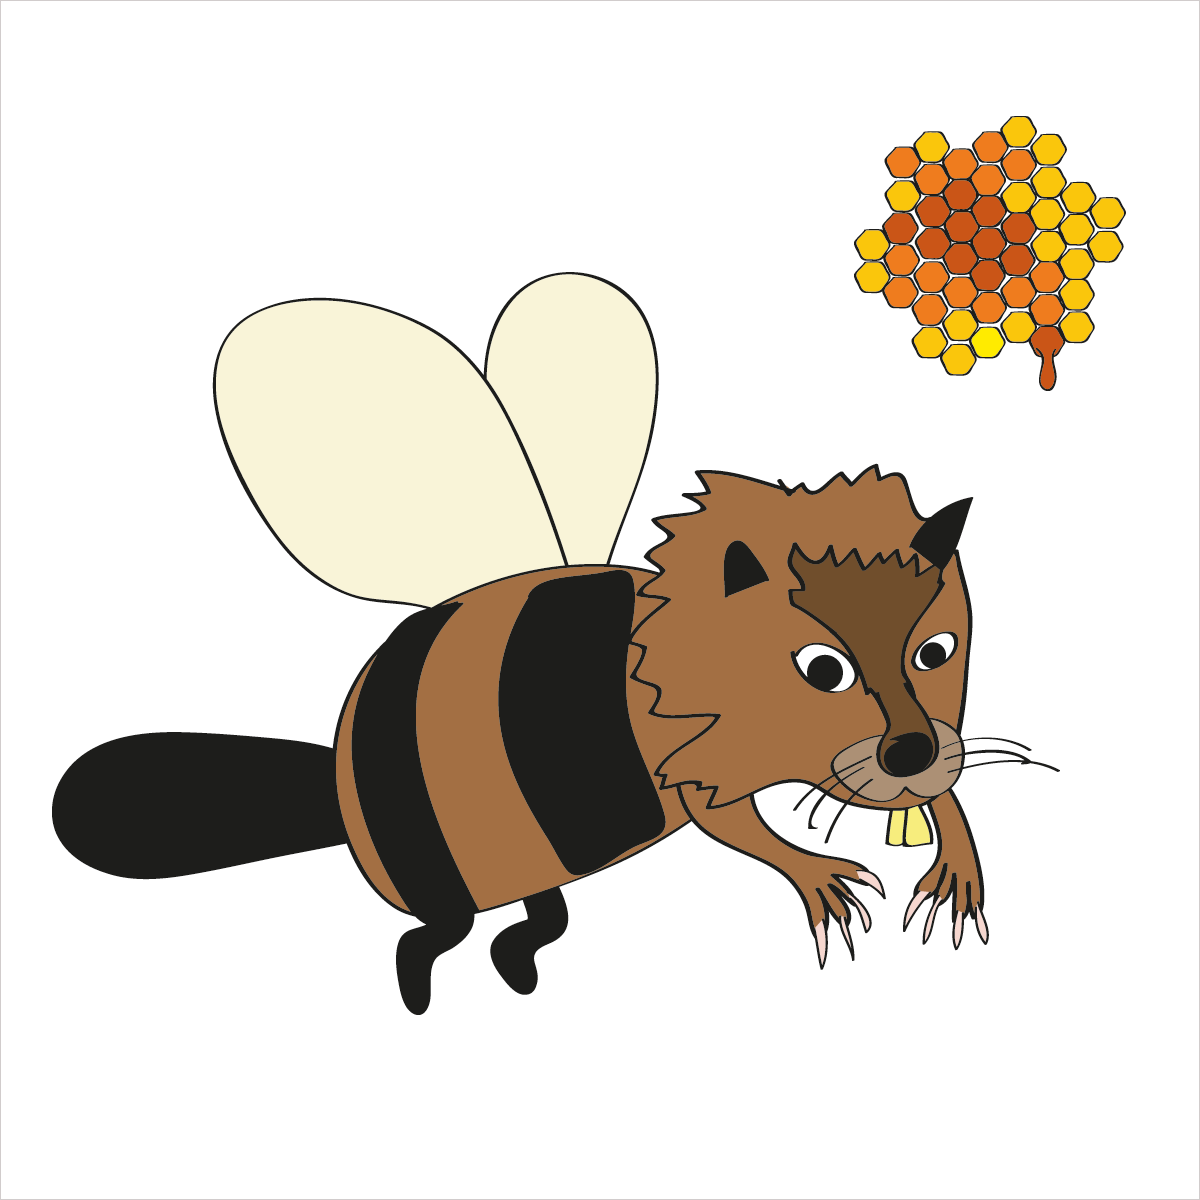 He builds dams and loves the taste of honey. He is BEAVERBEE